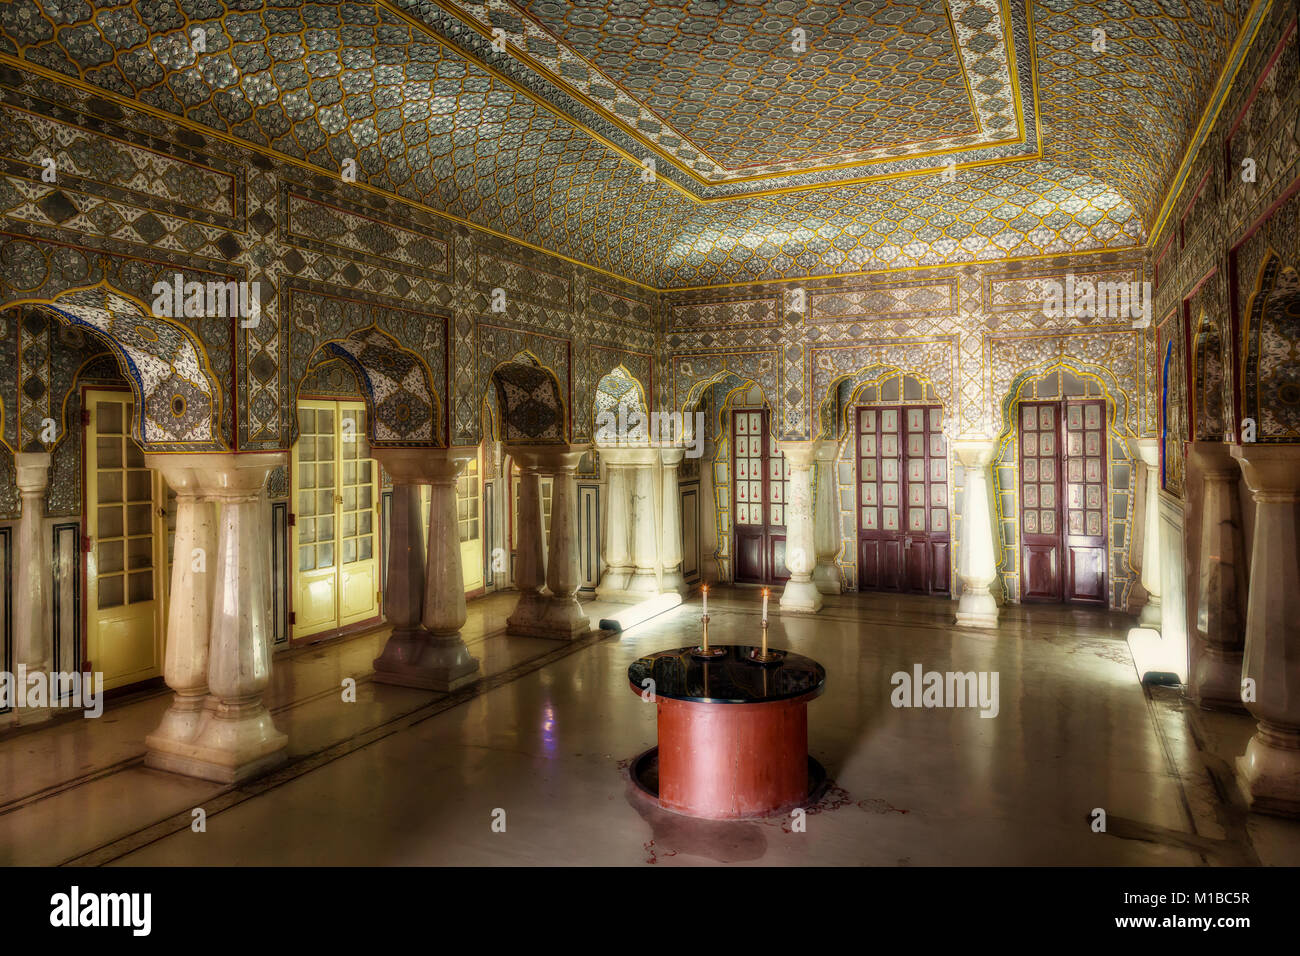 City Palace Jaipur Rajasthan   View Of Royal Palace Glass Room With Antique  Mirror And Glass Decoration